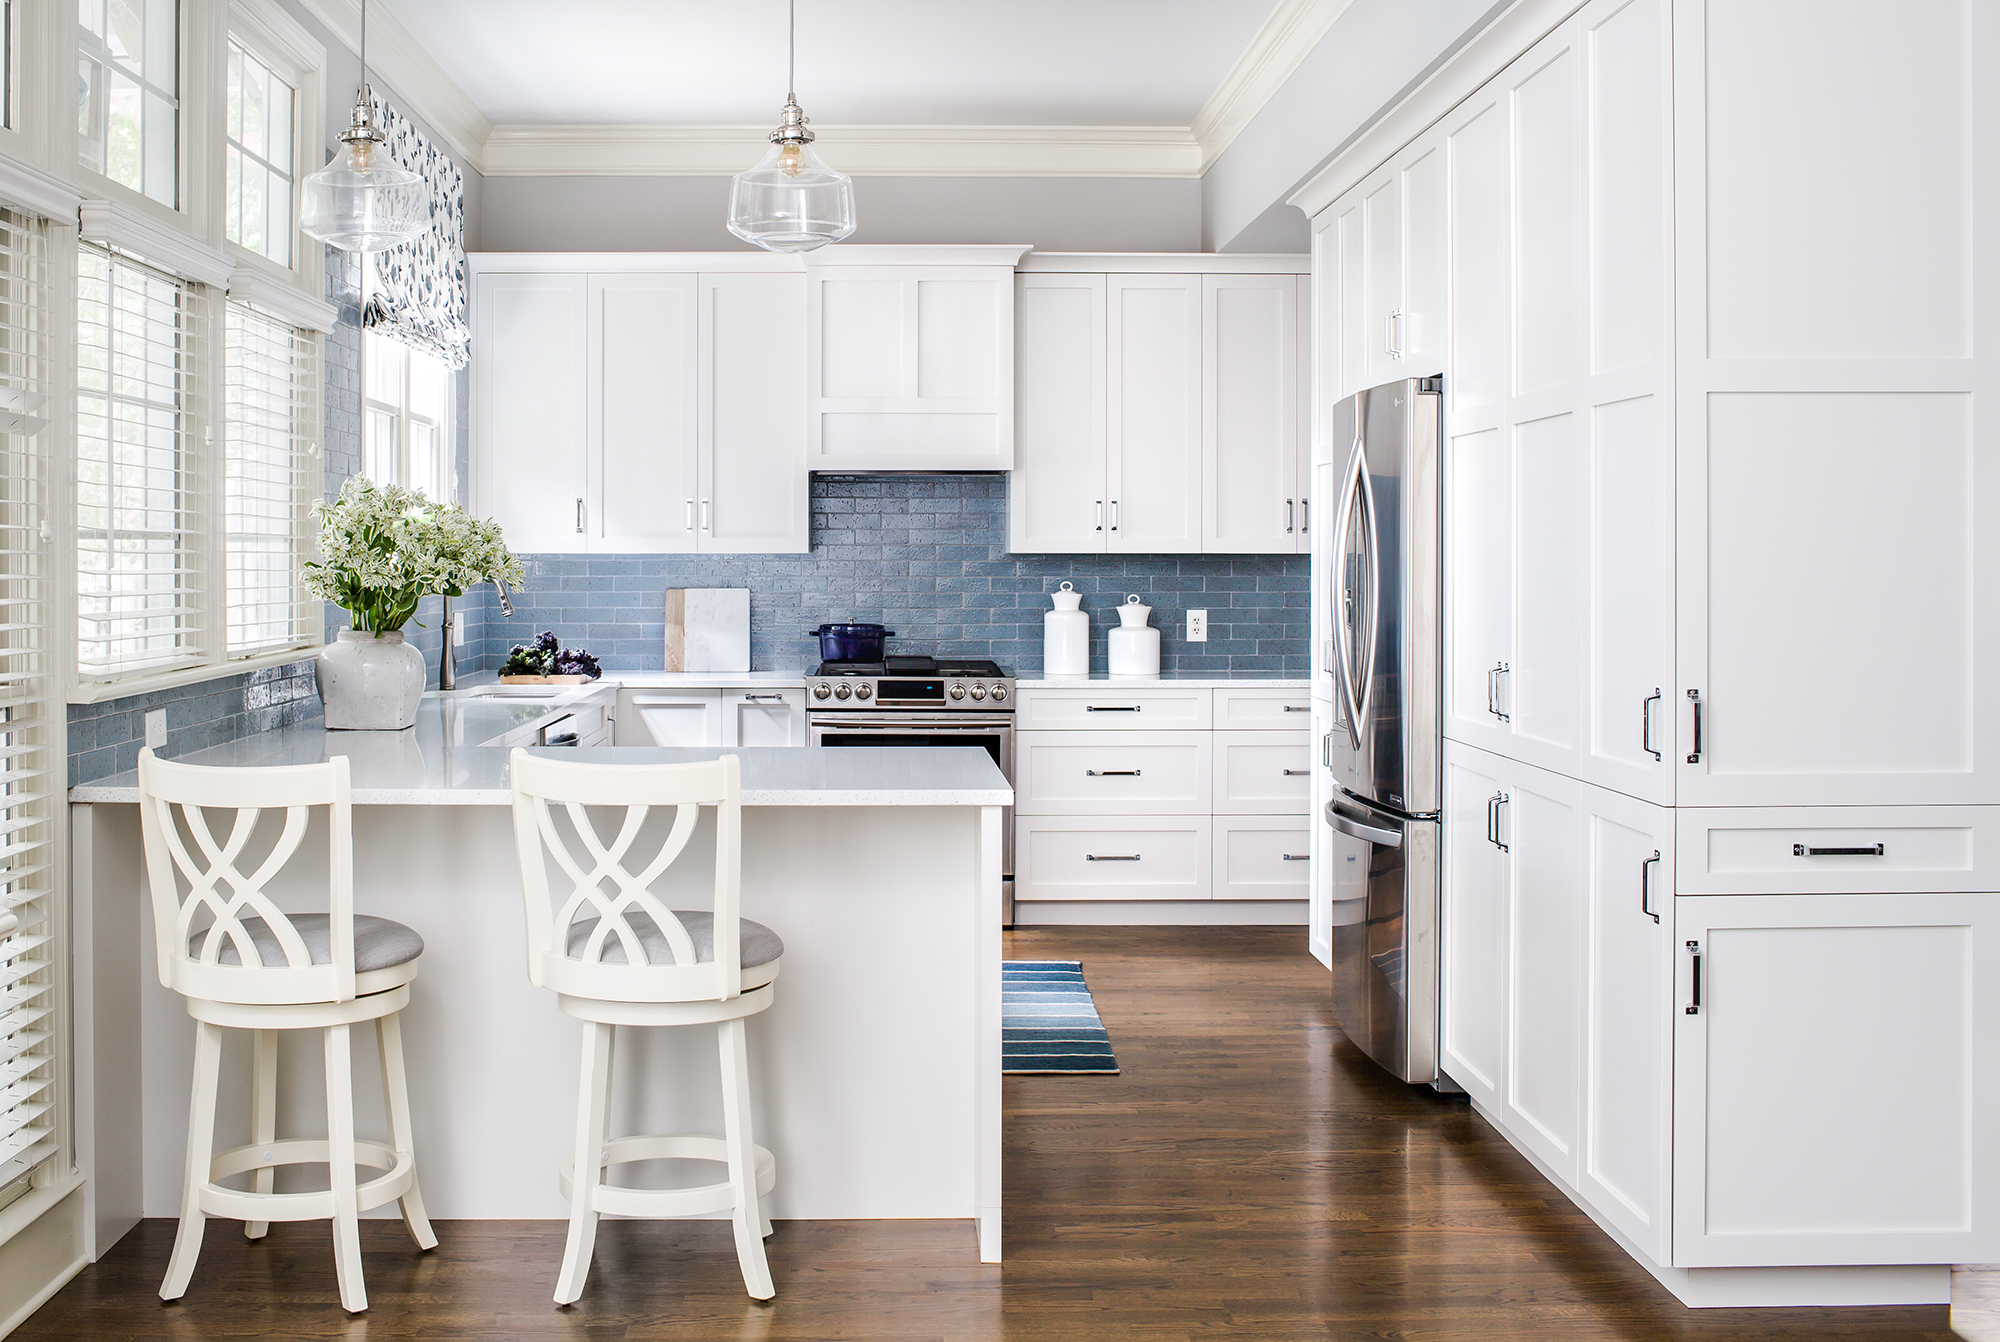 decatur kitchen renovation | jeff herr photography